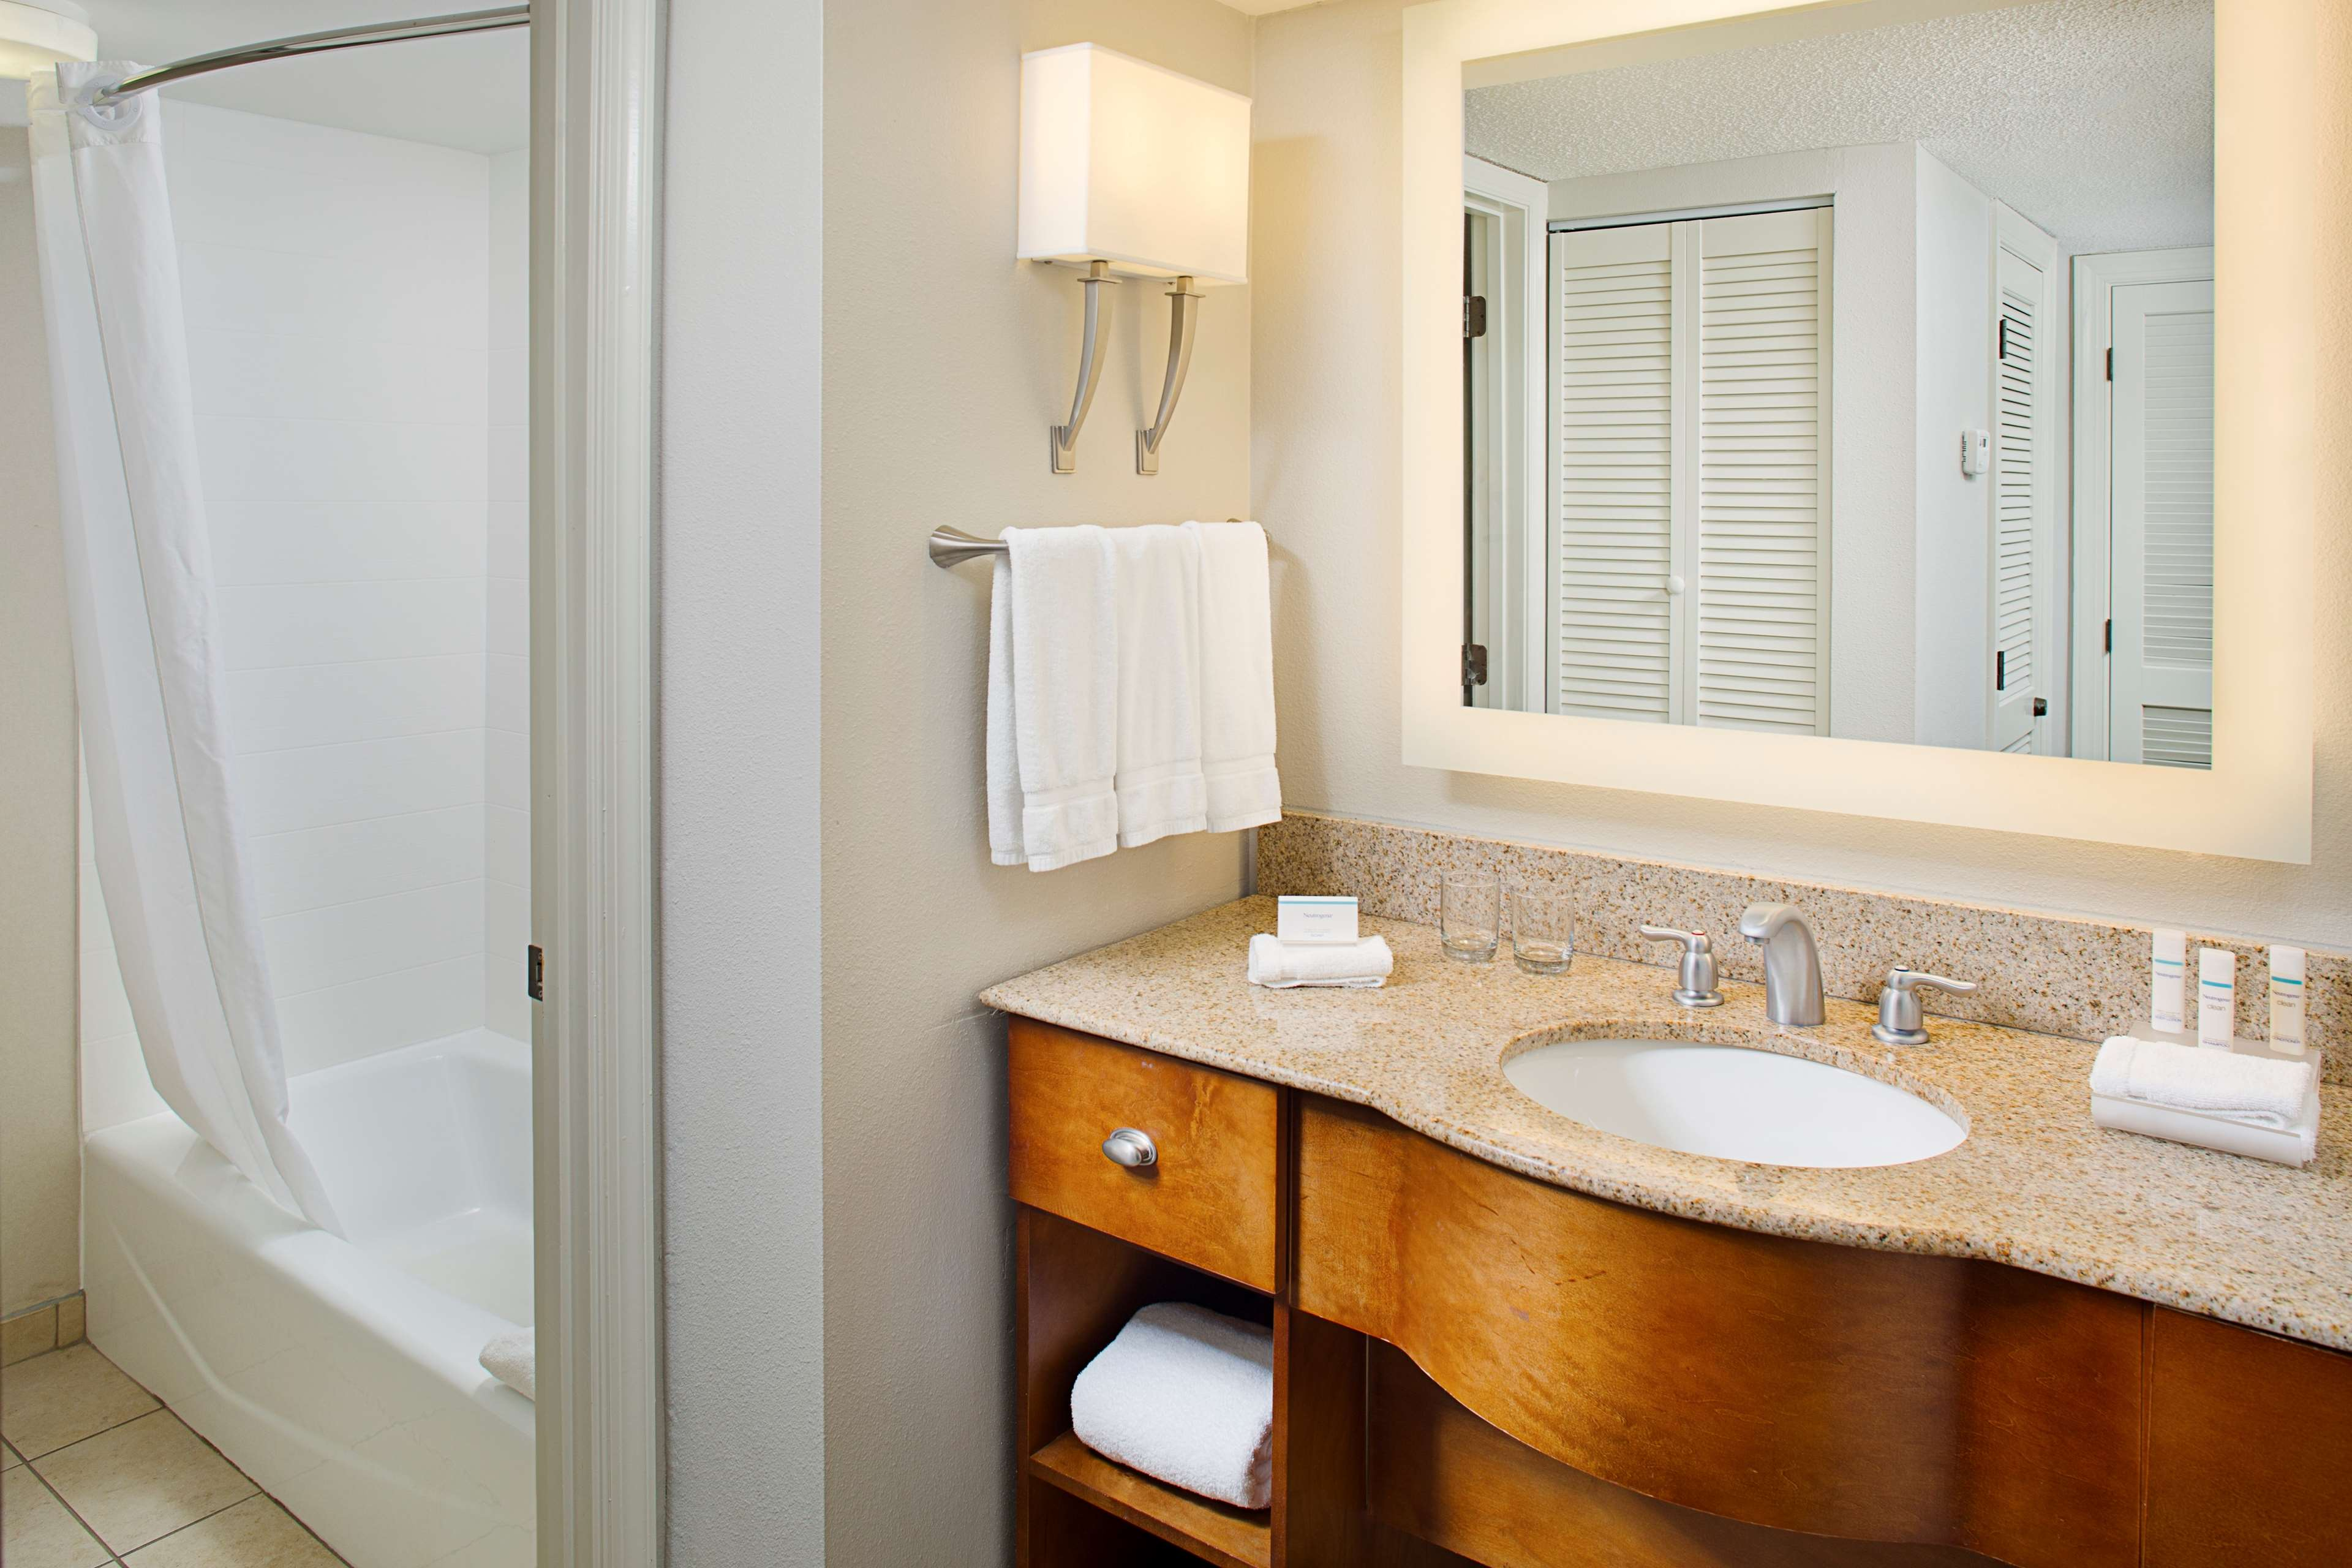 Homewood Suites by Hilton Raleigh/Cary image 37